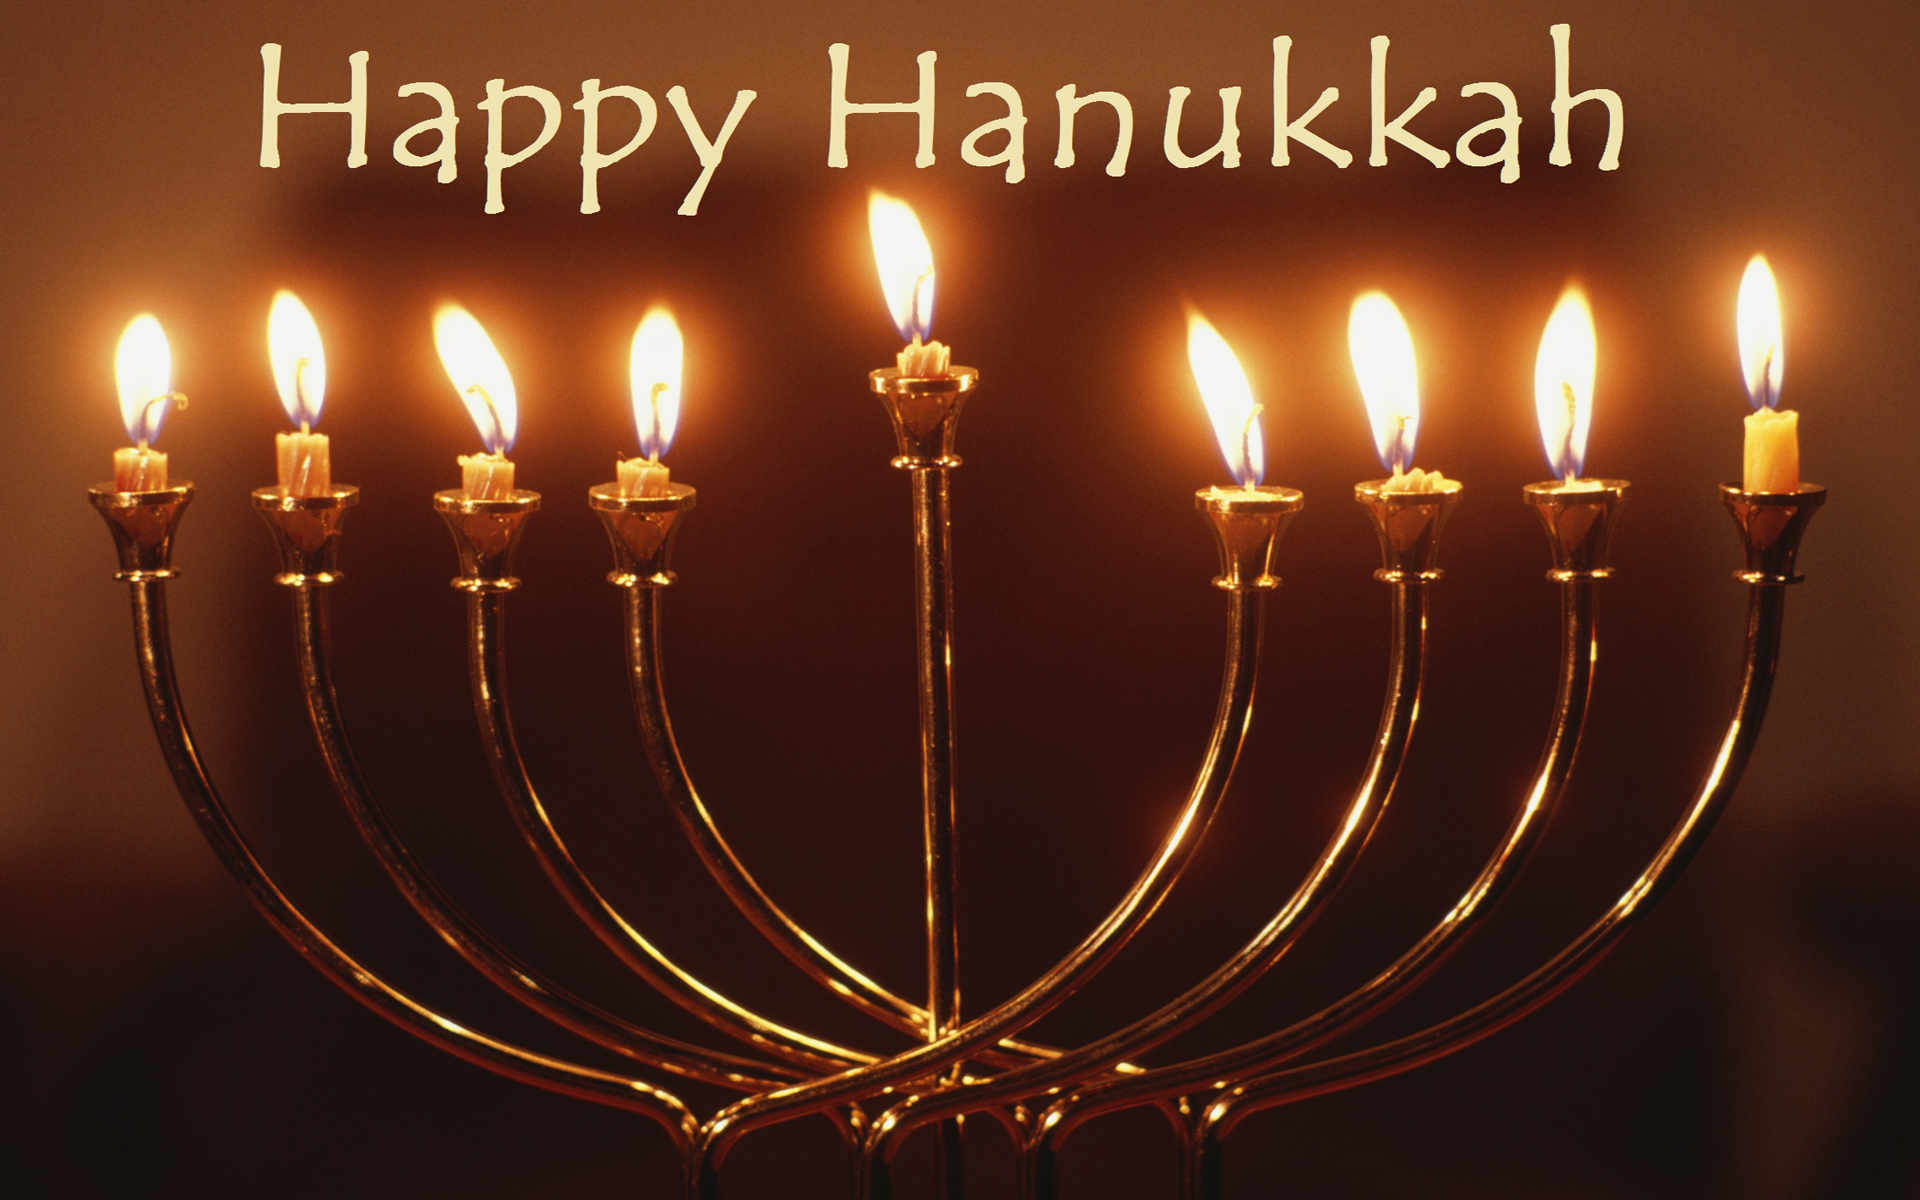 Happy Hanukkah 2014 background hd wallpaper background desktop 1920x1200